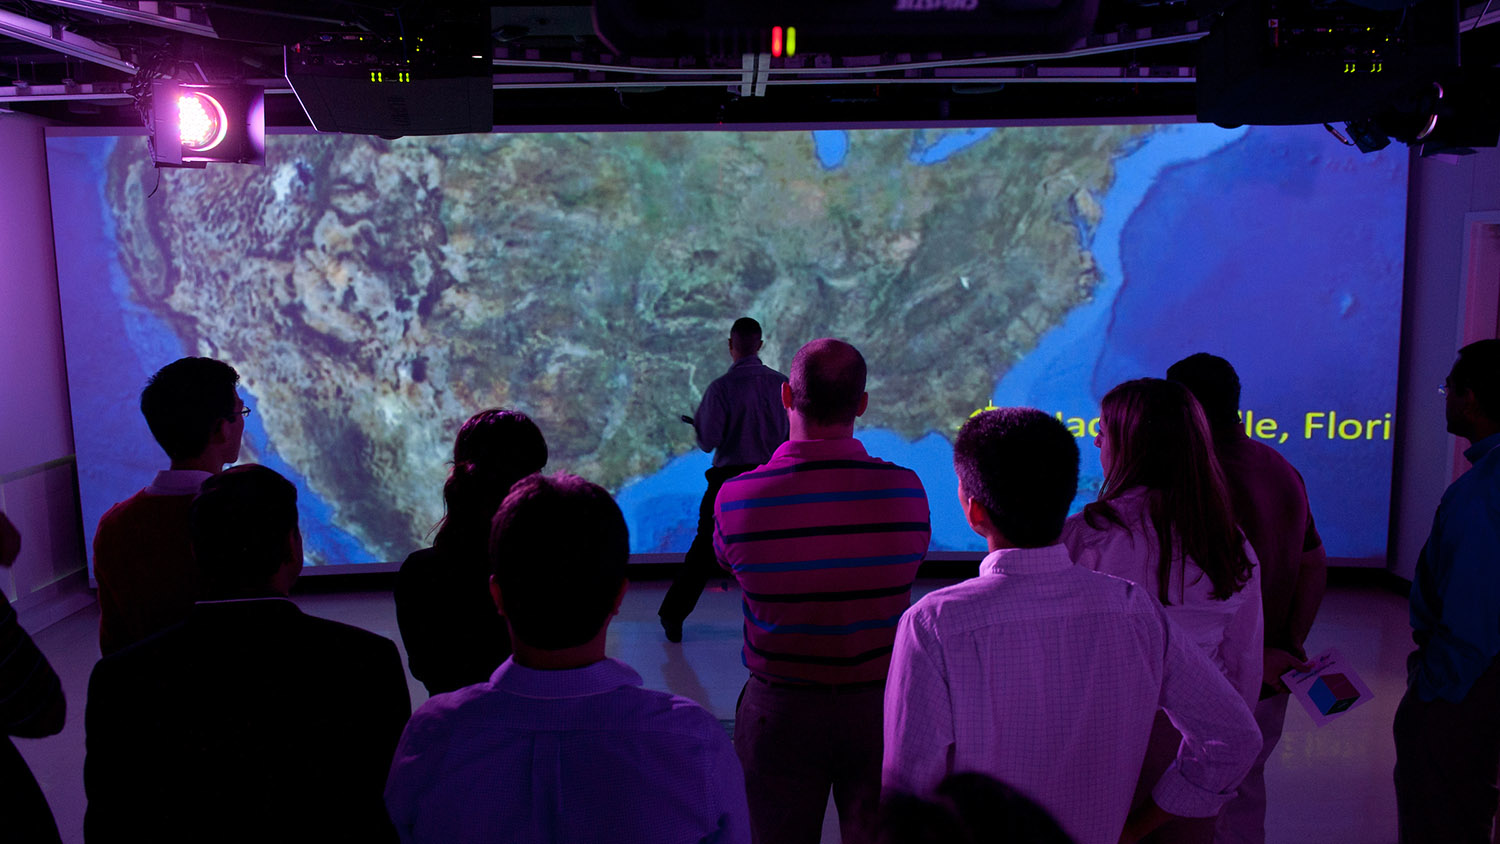 students looking at screen with map of U.S.